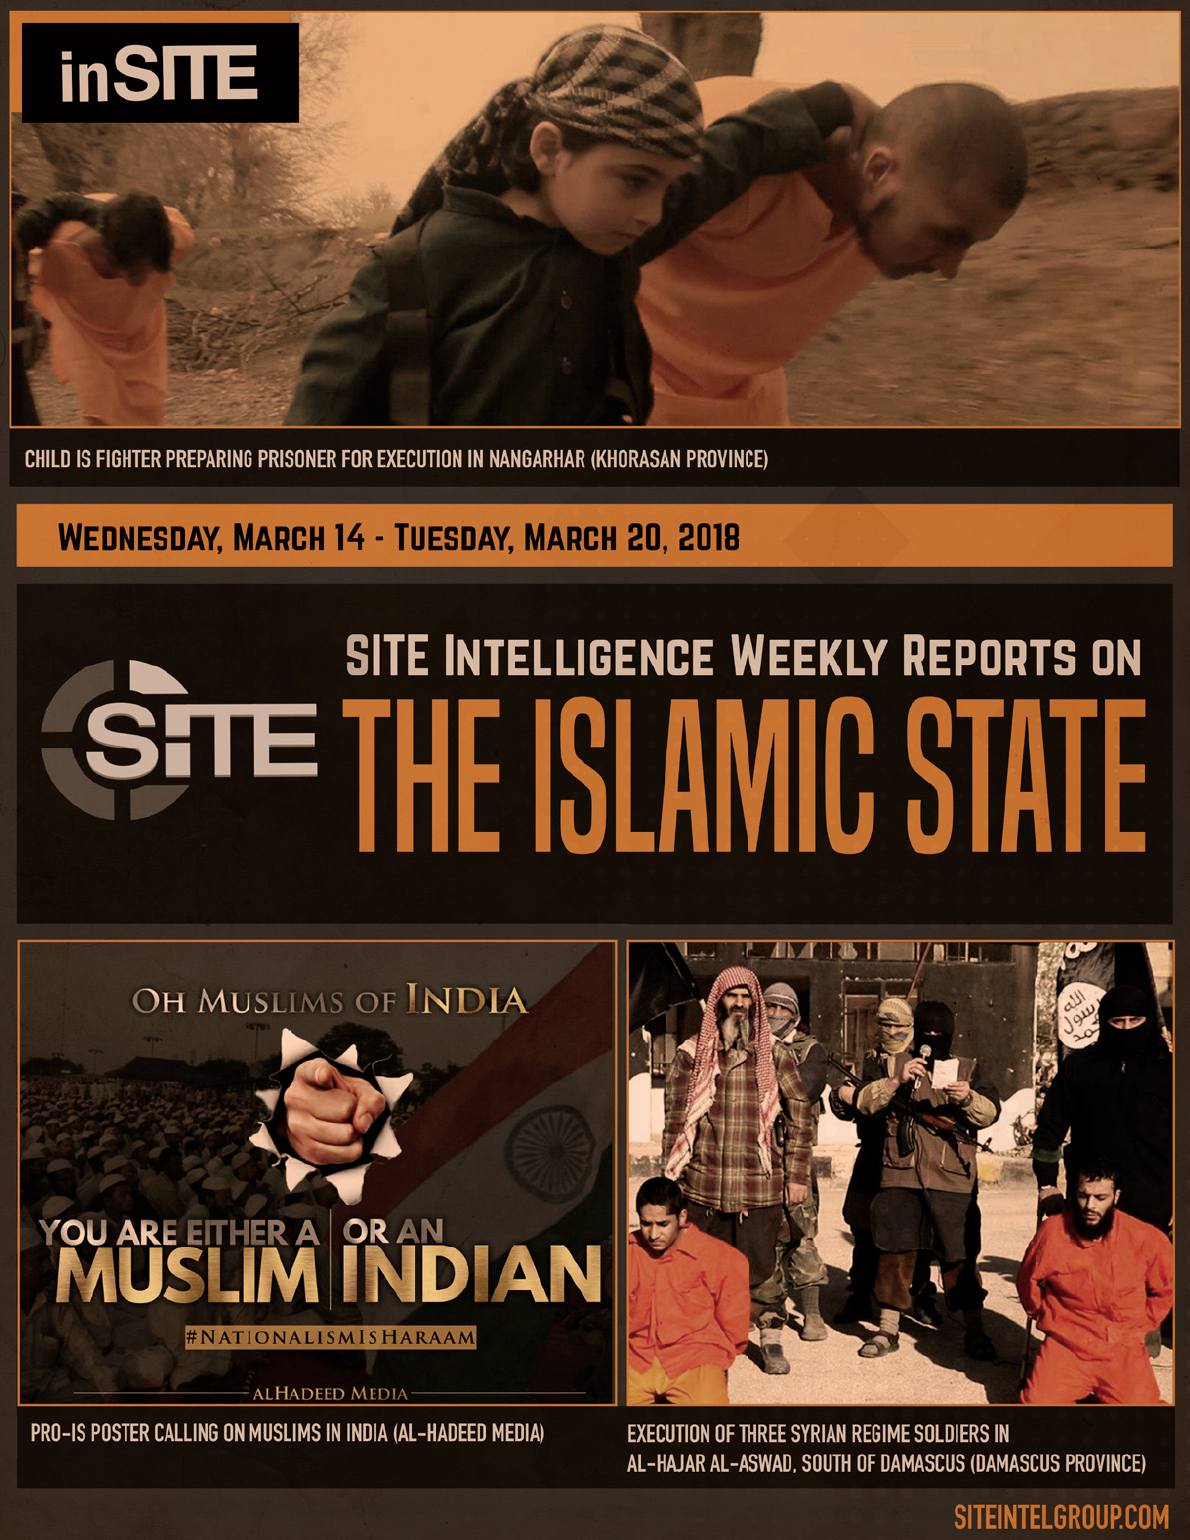 Weekly inSITE on the Islamic State for March 14-20, 2018